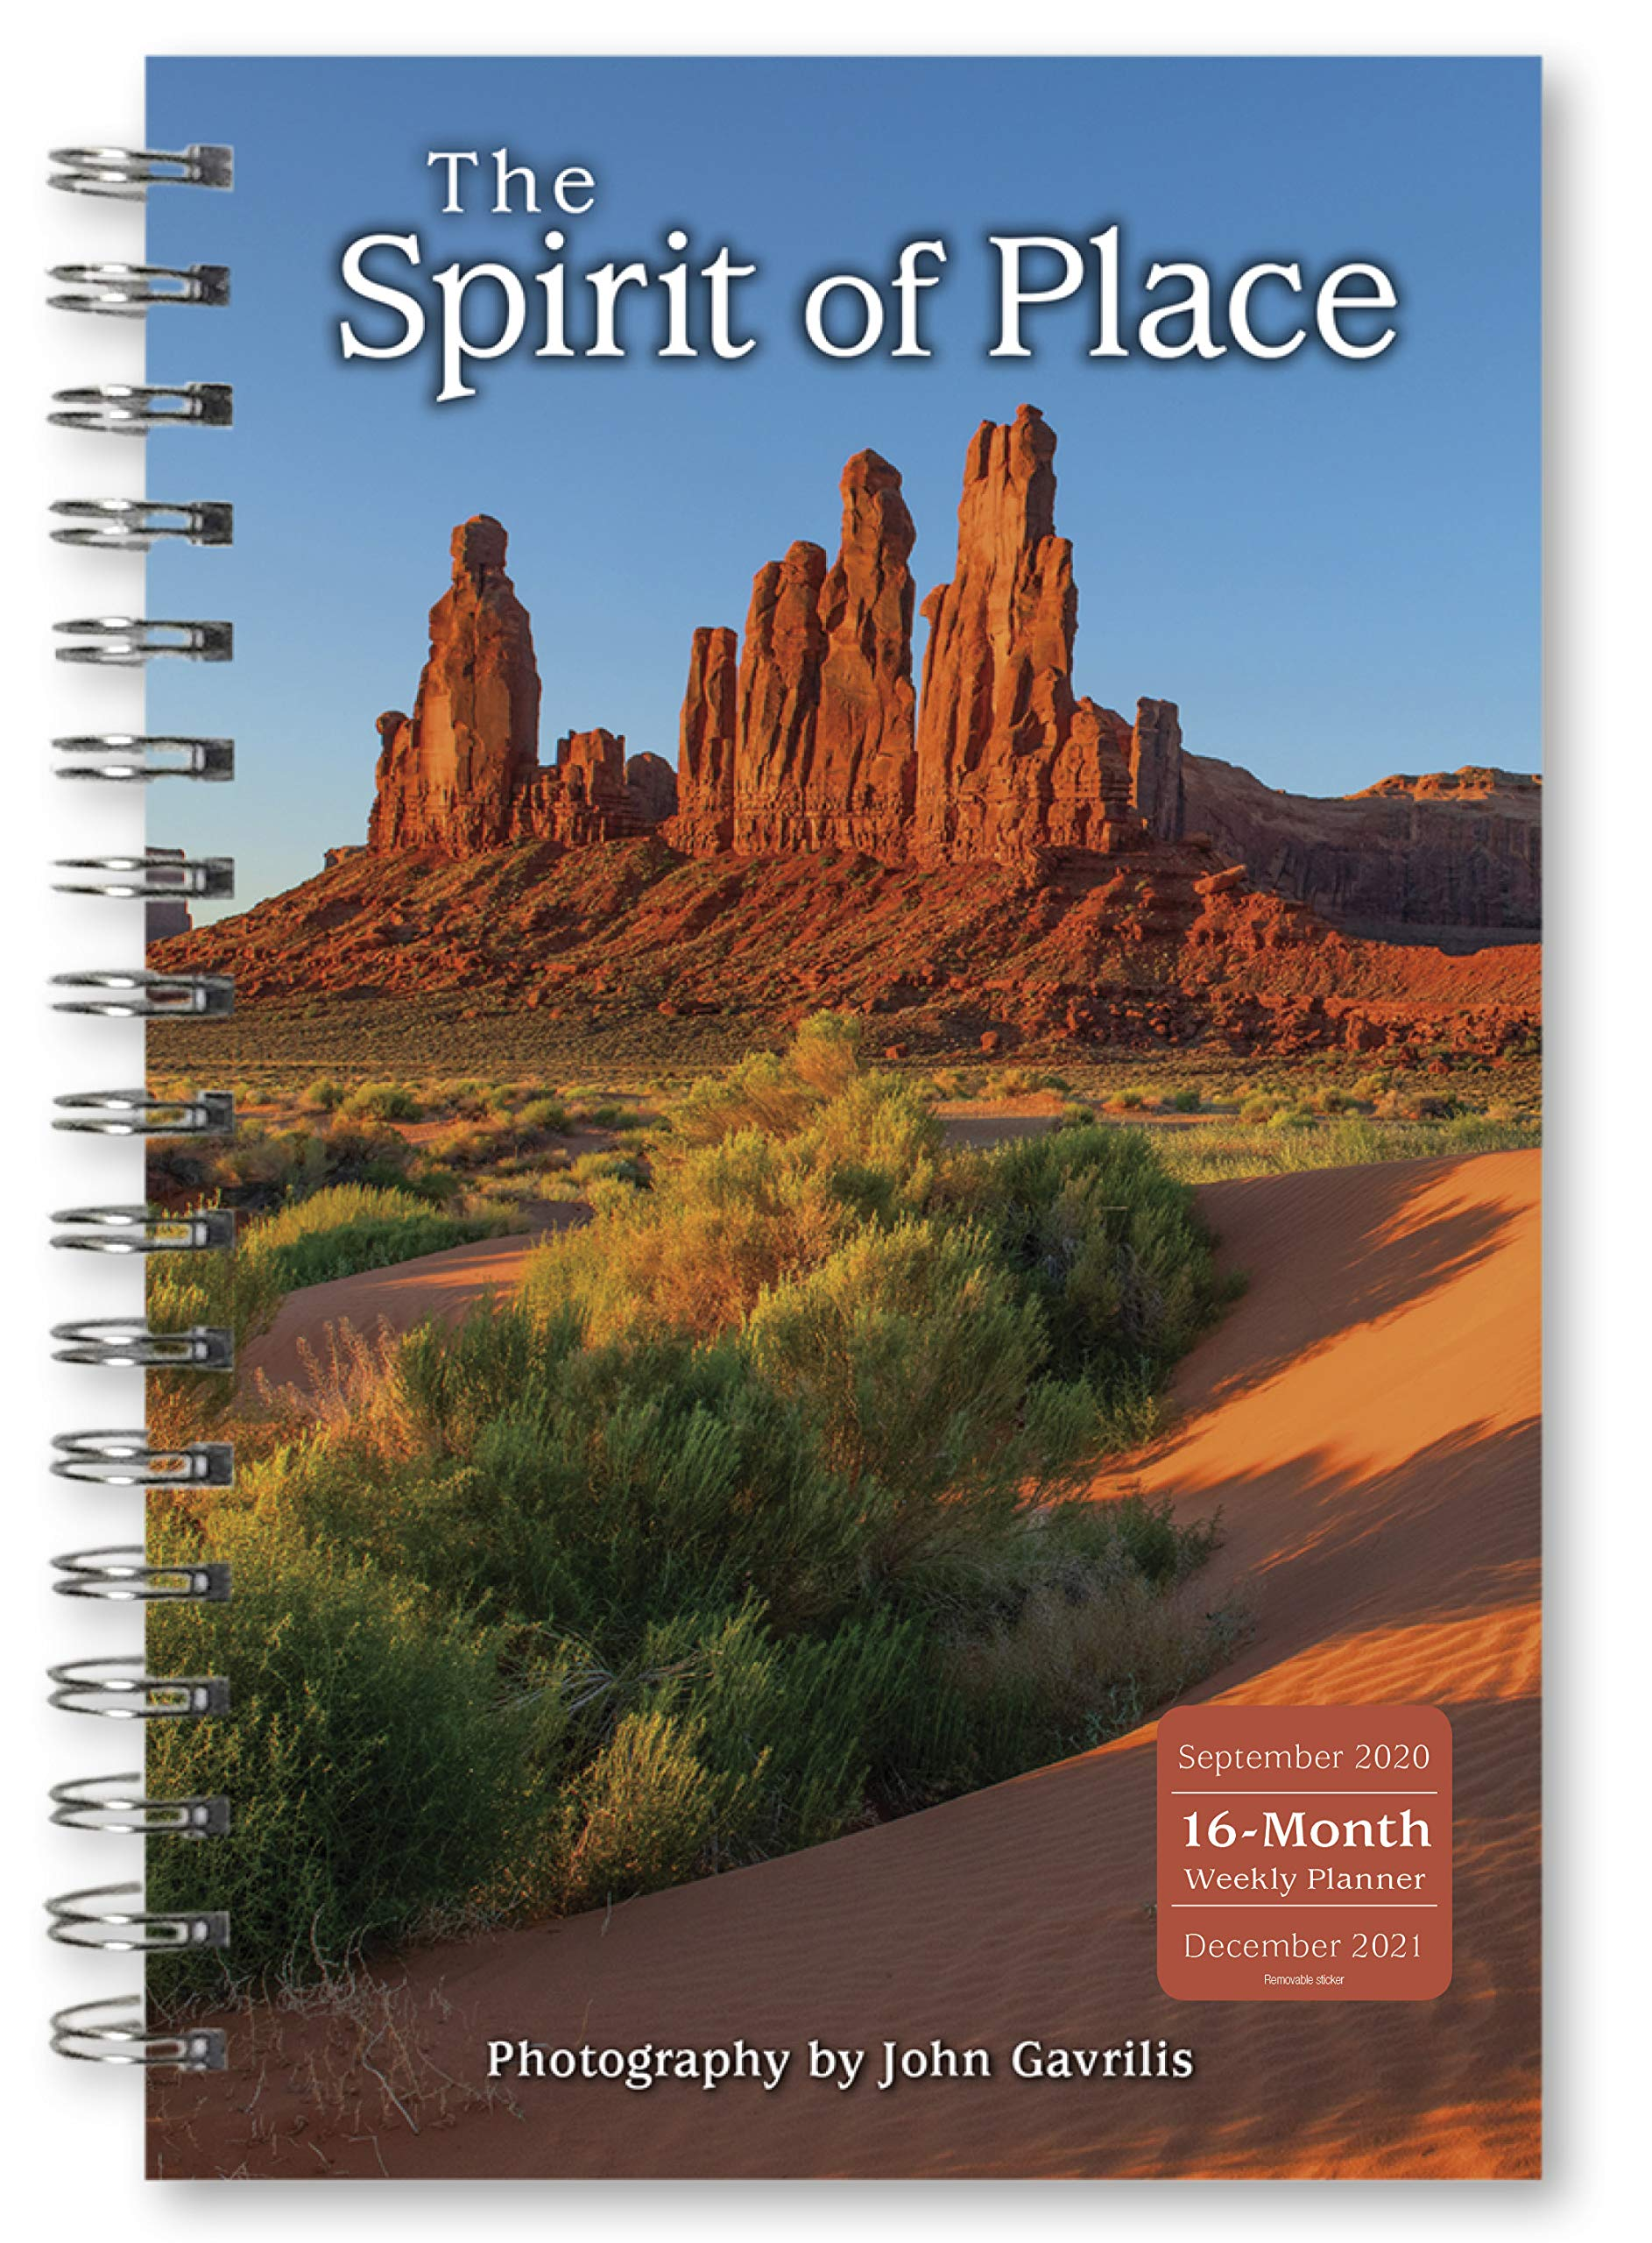 Image for 2021 The Spirit of Place 16-Month Weekly Planner